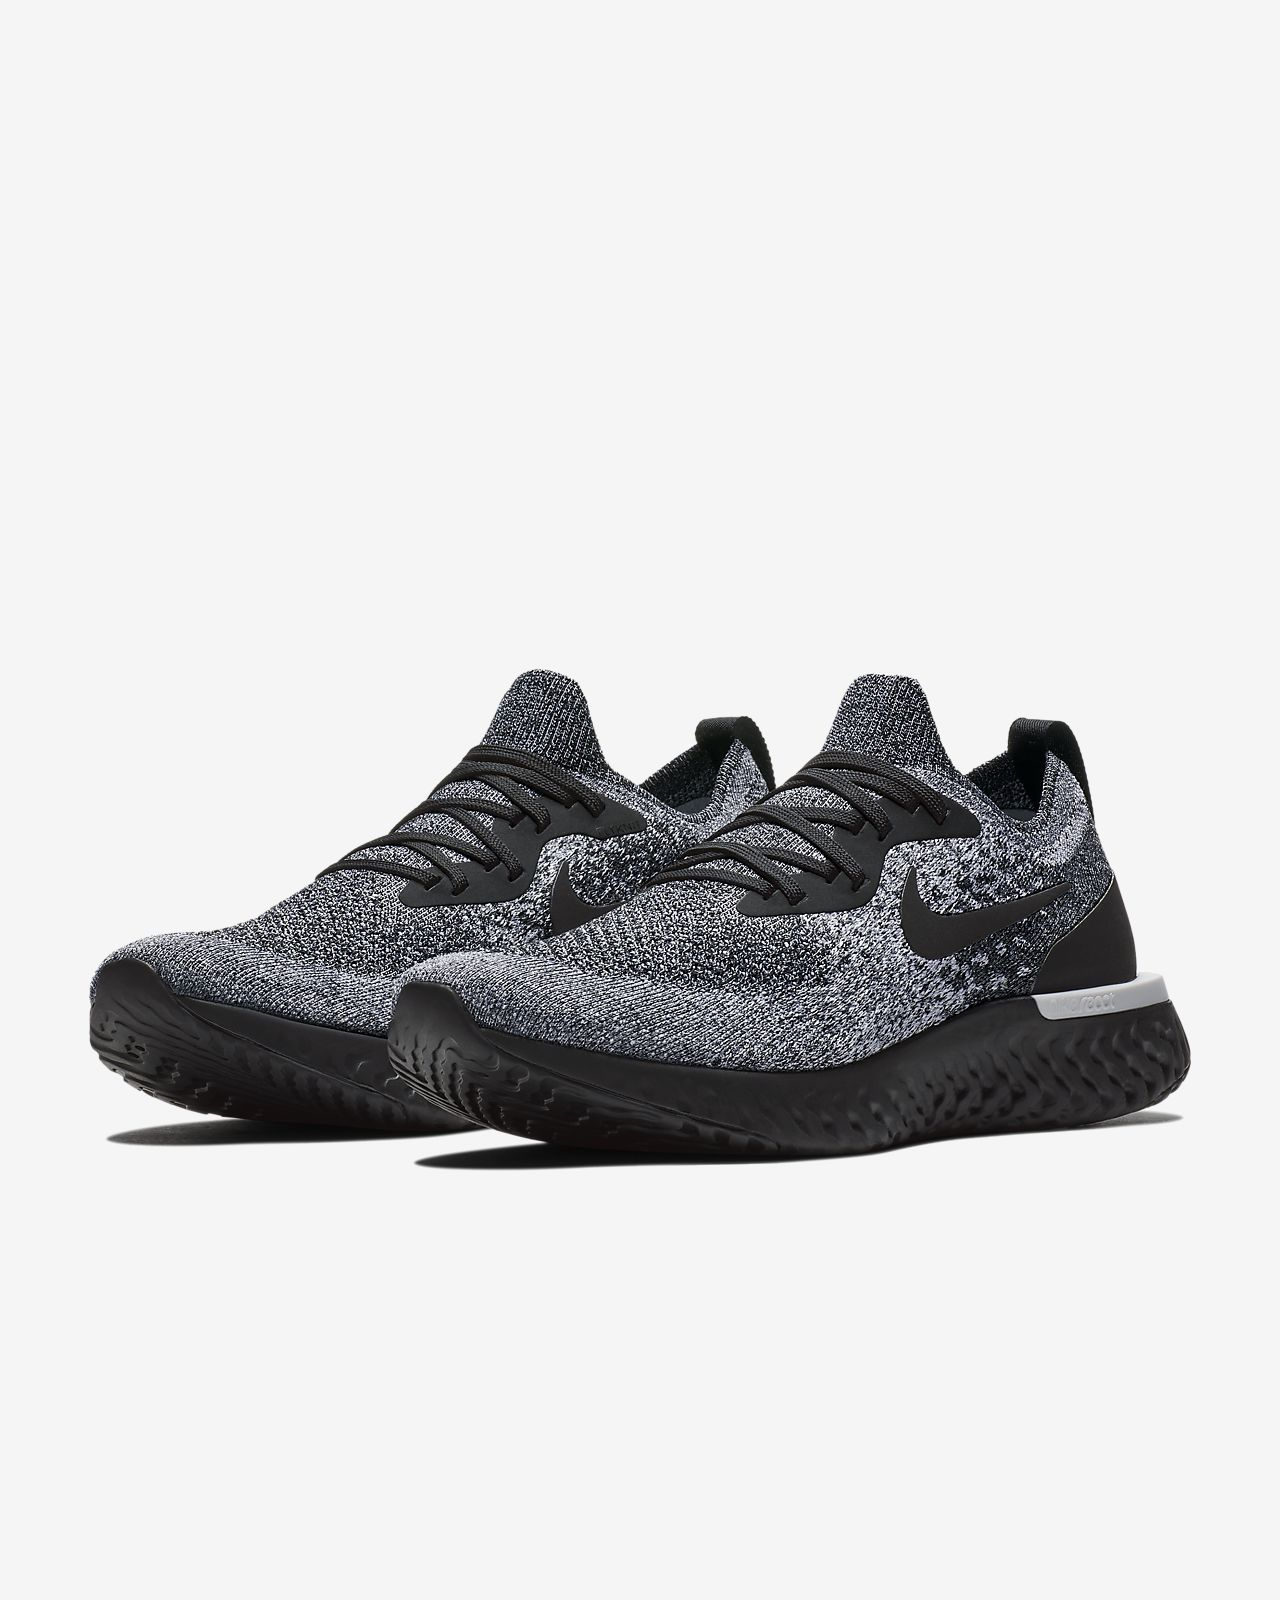 3b979cdffb9a7 Nike Epic React Flyknit Men s Running Shoe. Nike.com ID